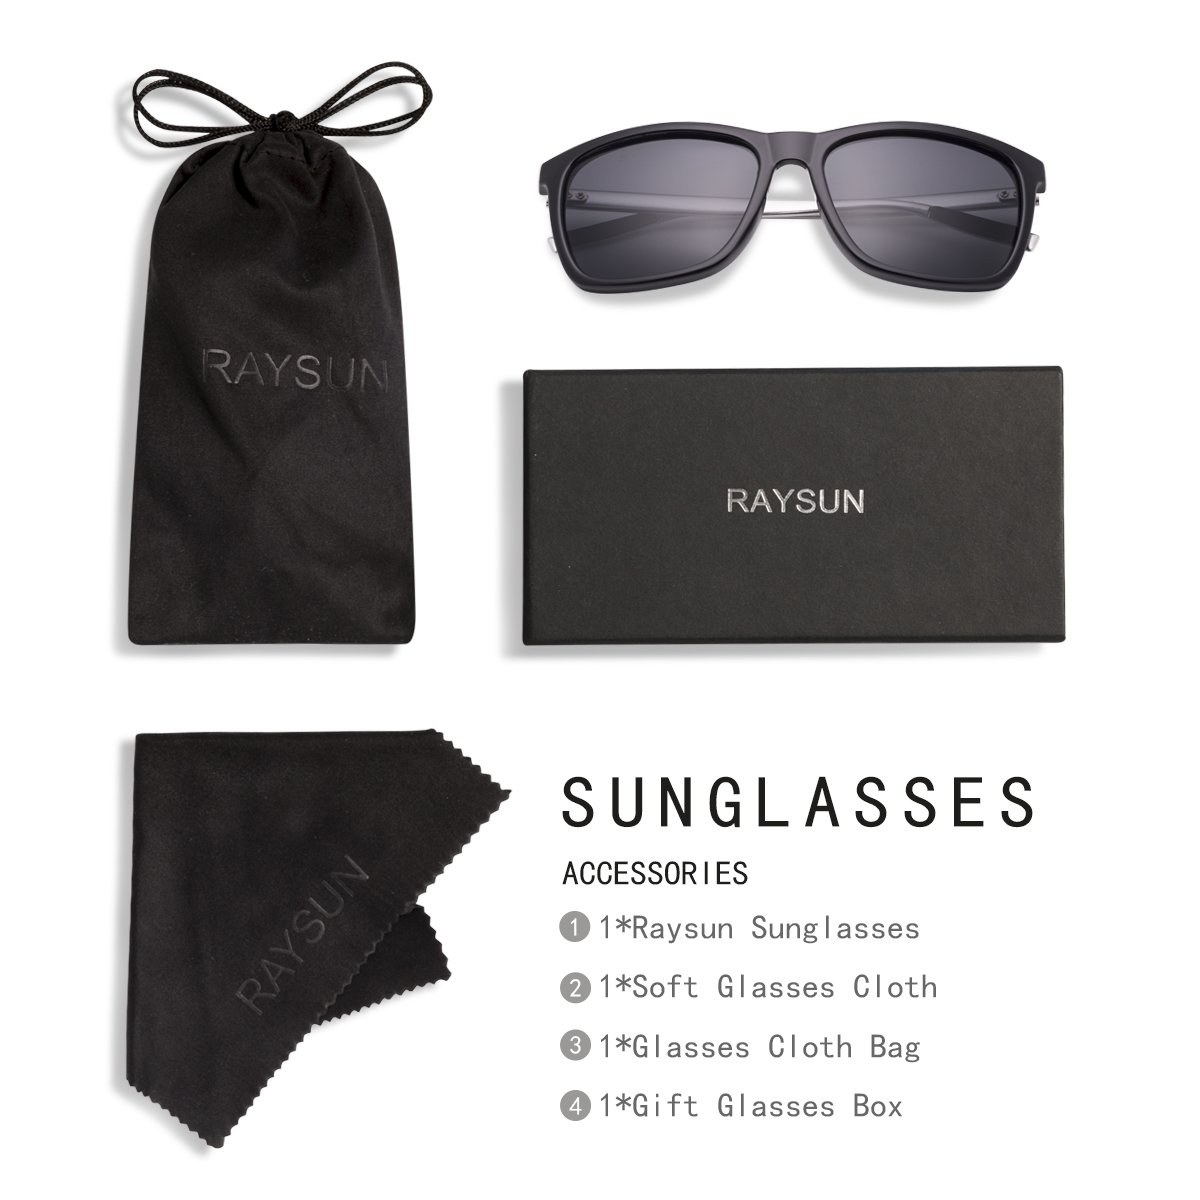 RAYSUN Unisex Black Square Polarized Sunglasses Polarized for Men Women